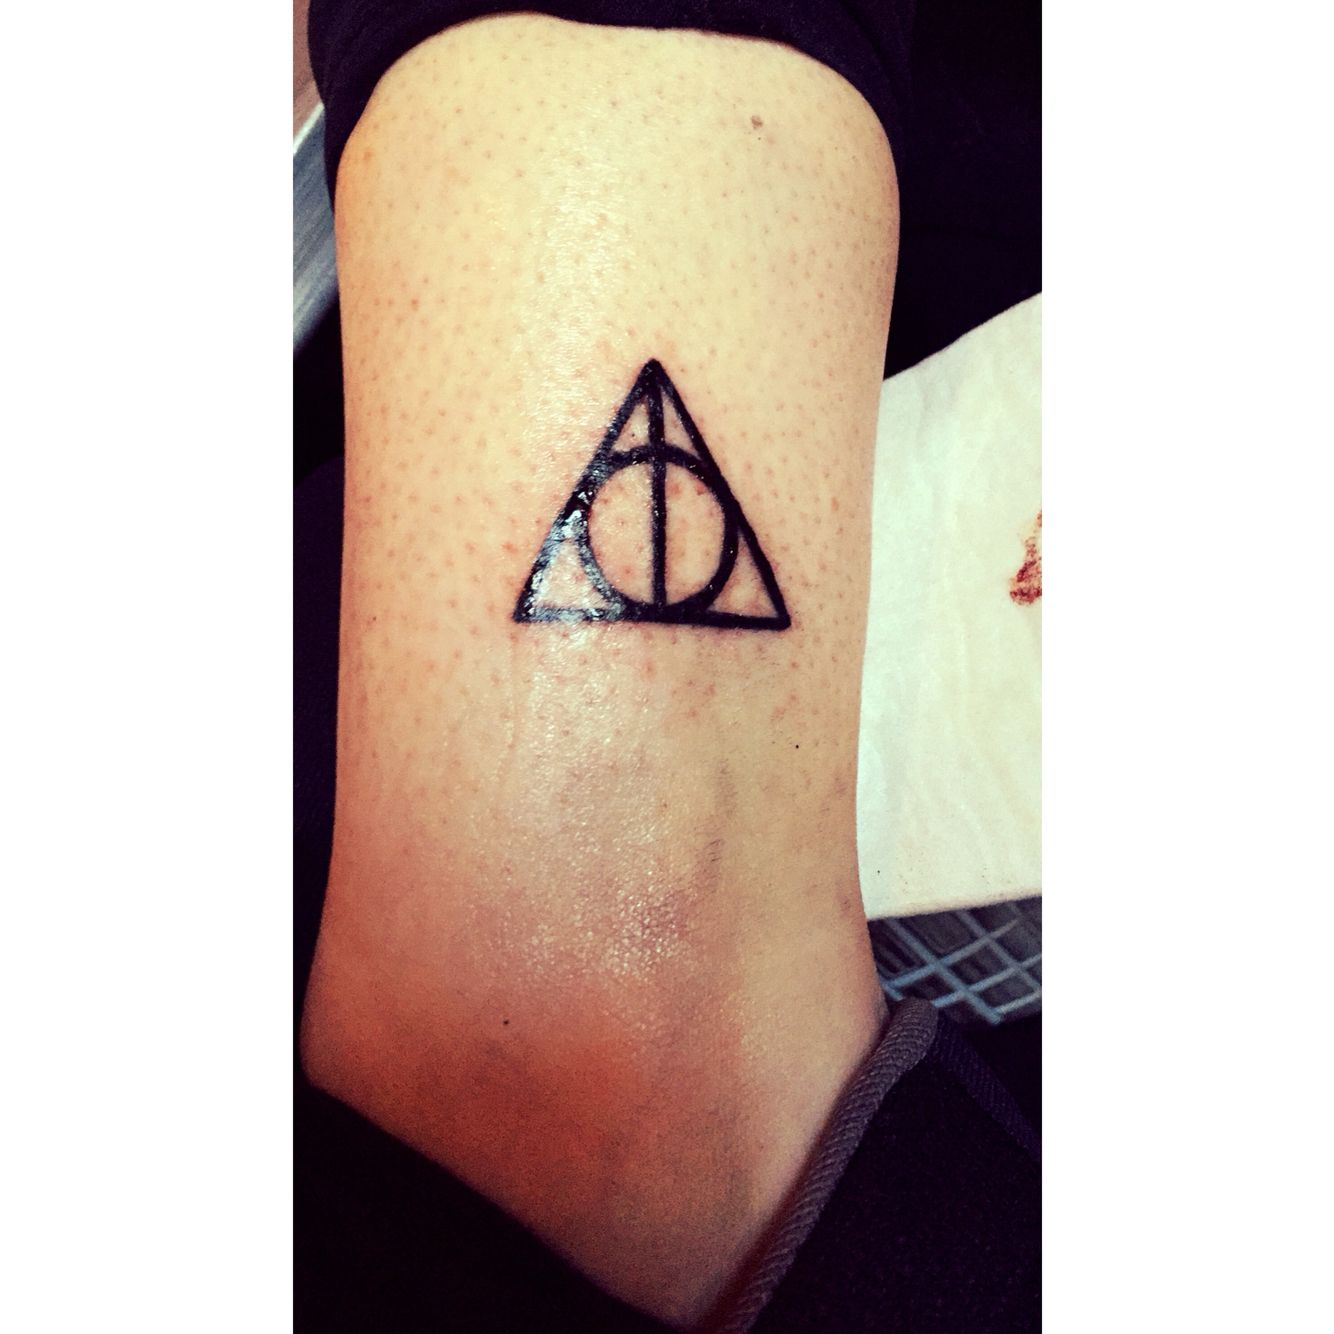 New tattoo #tattoo #harrypotter #dealthyhallows #ankle #hp